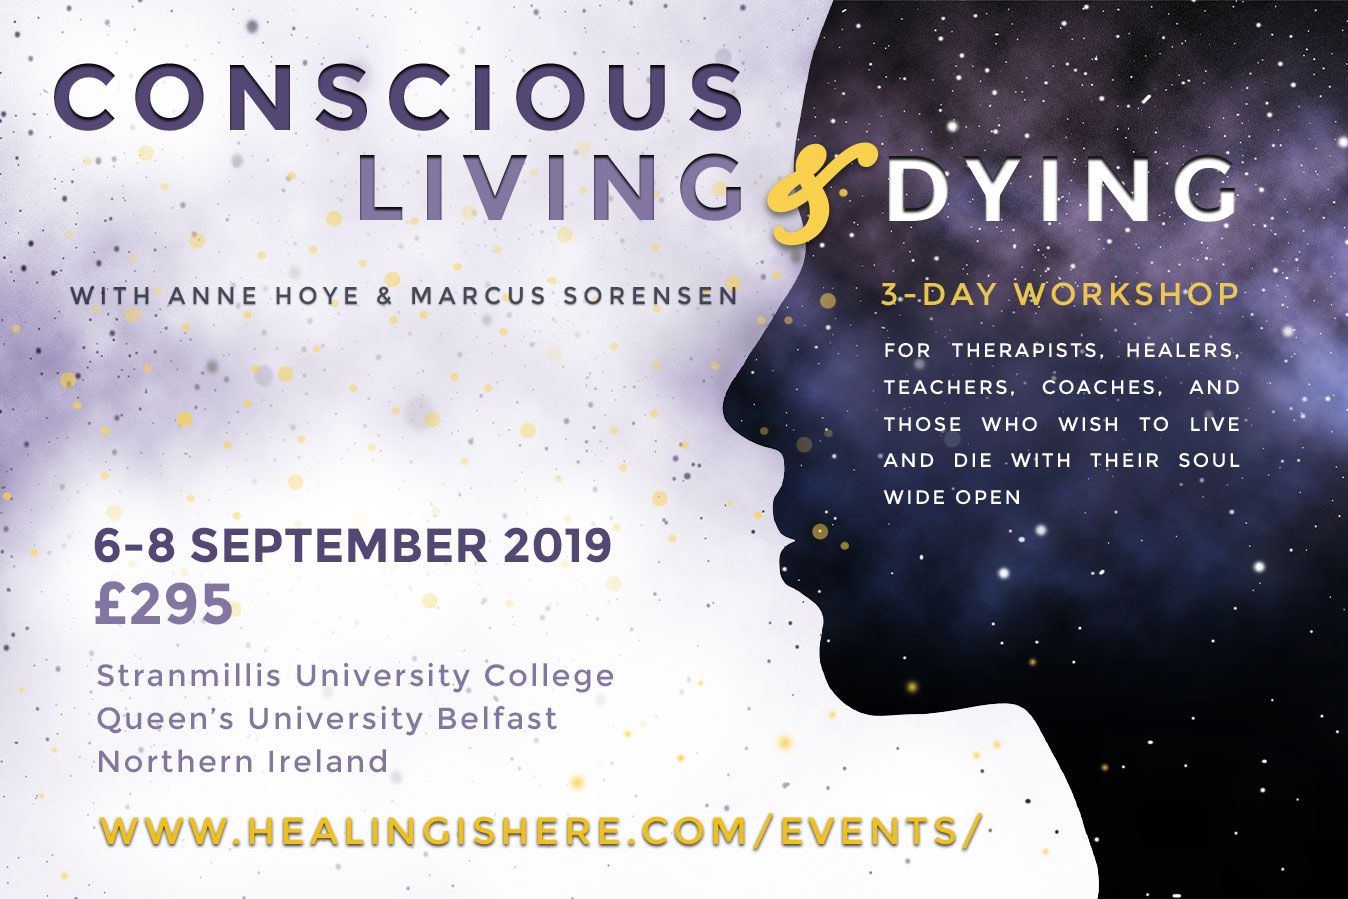 Conscious Living & Dying Workshop Flyer